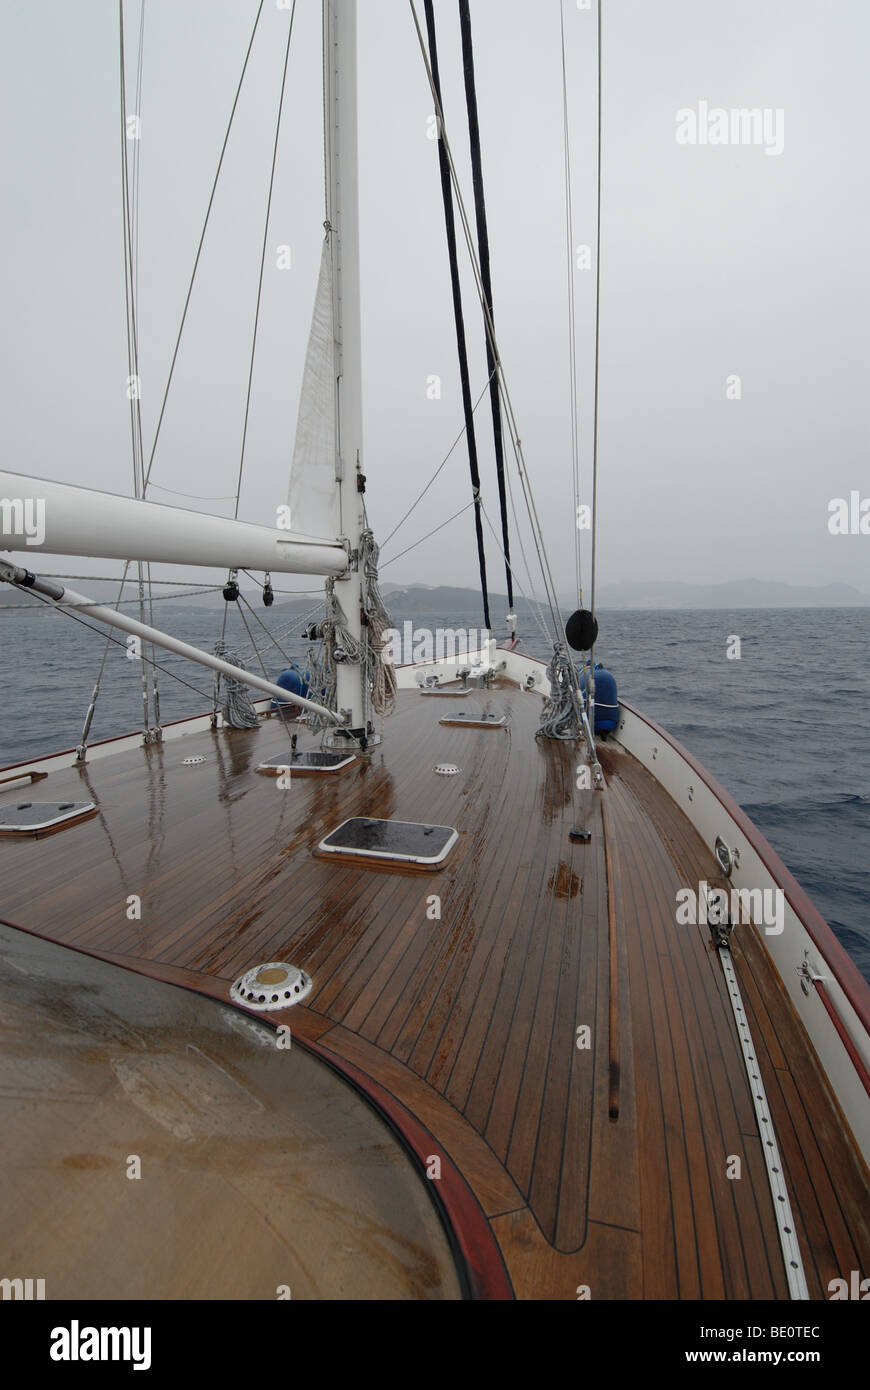 wooden sailboat sailig in the rain - Stock Image